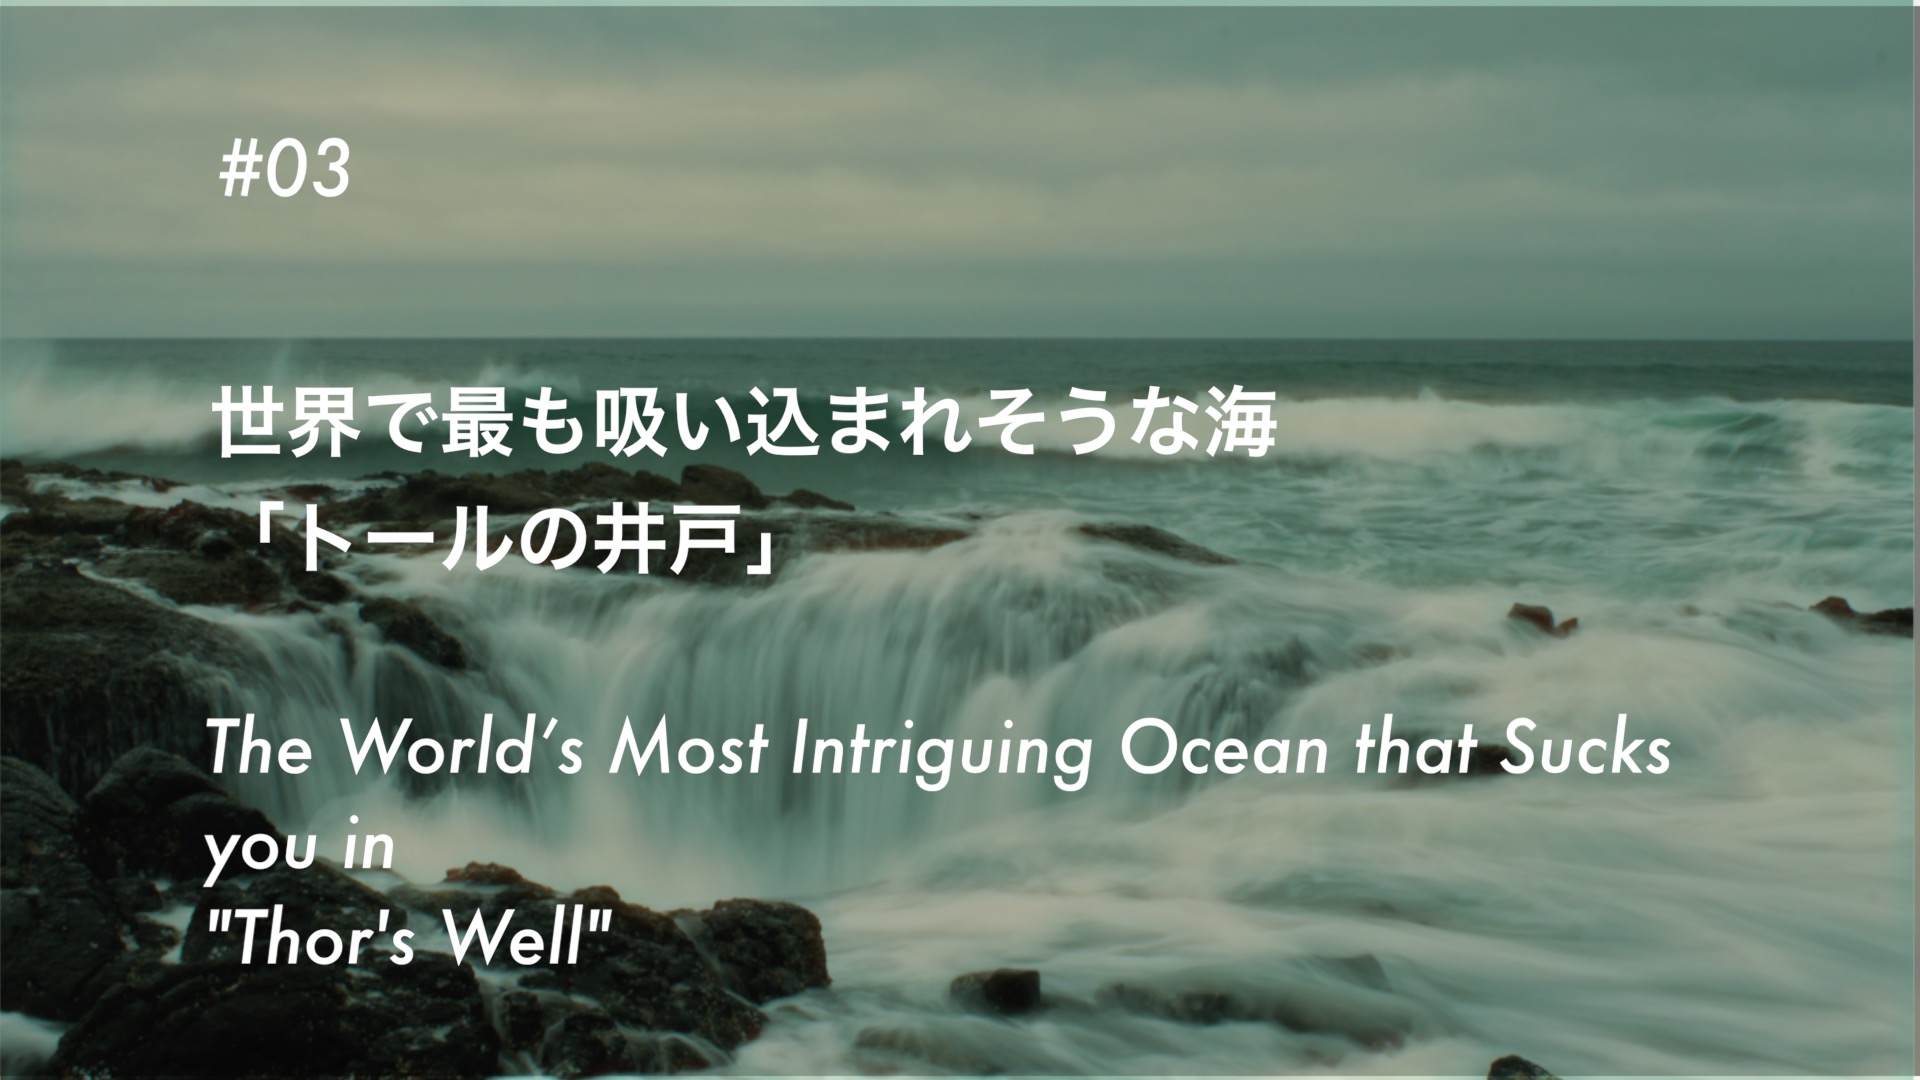 "#03 世界で最も吸い込まれそうな海 「トールの井戸」- The World's Most Intriguing Ocean that Sucks you in ""Thor's Well"""